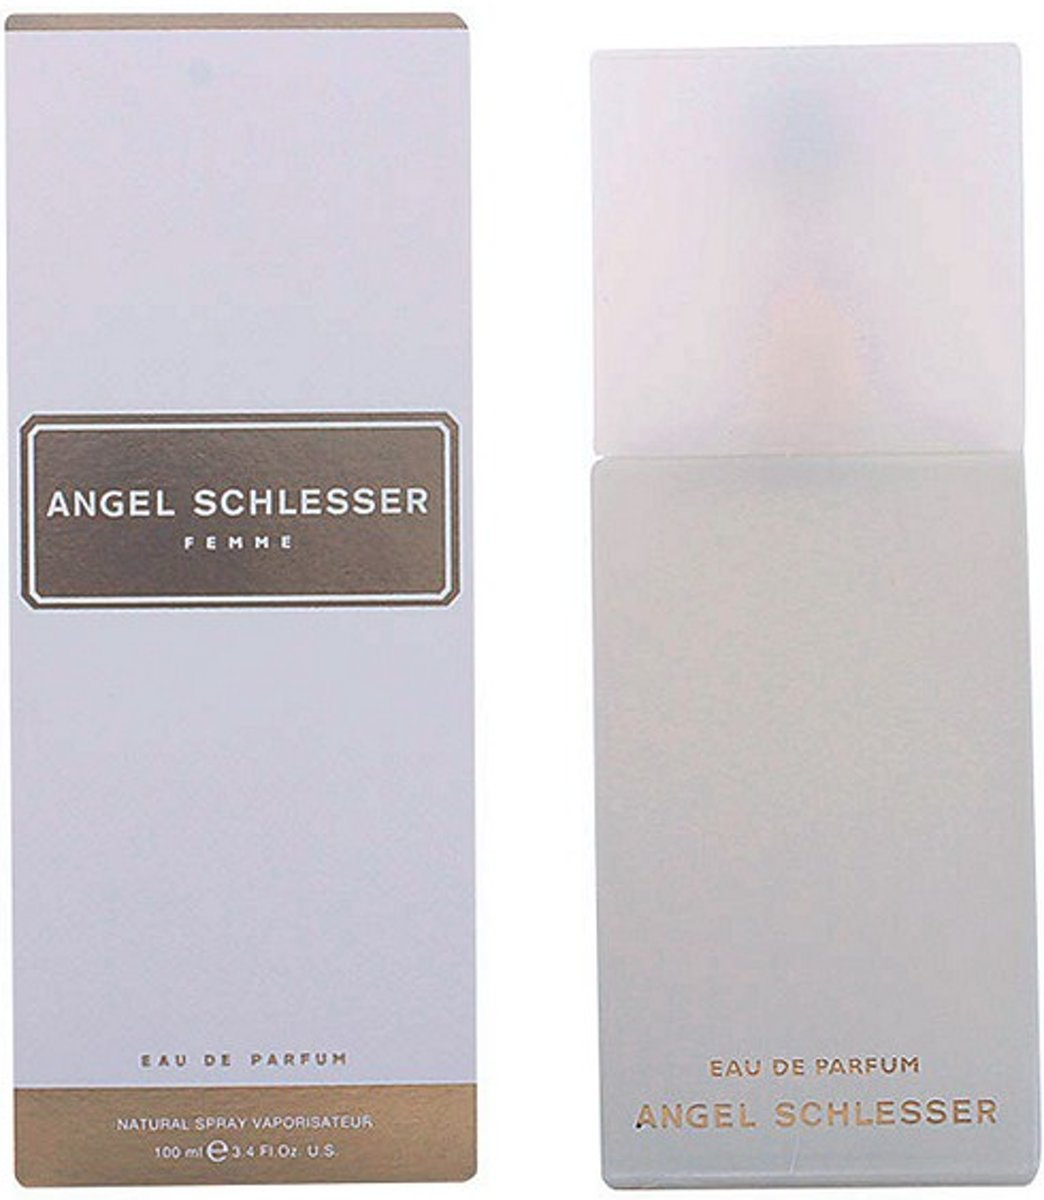 ANGEL SCHLESSER edp verstuiver 100 ml